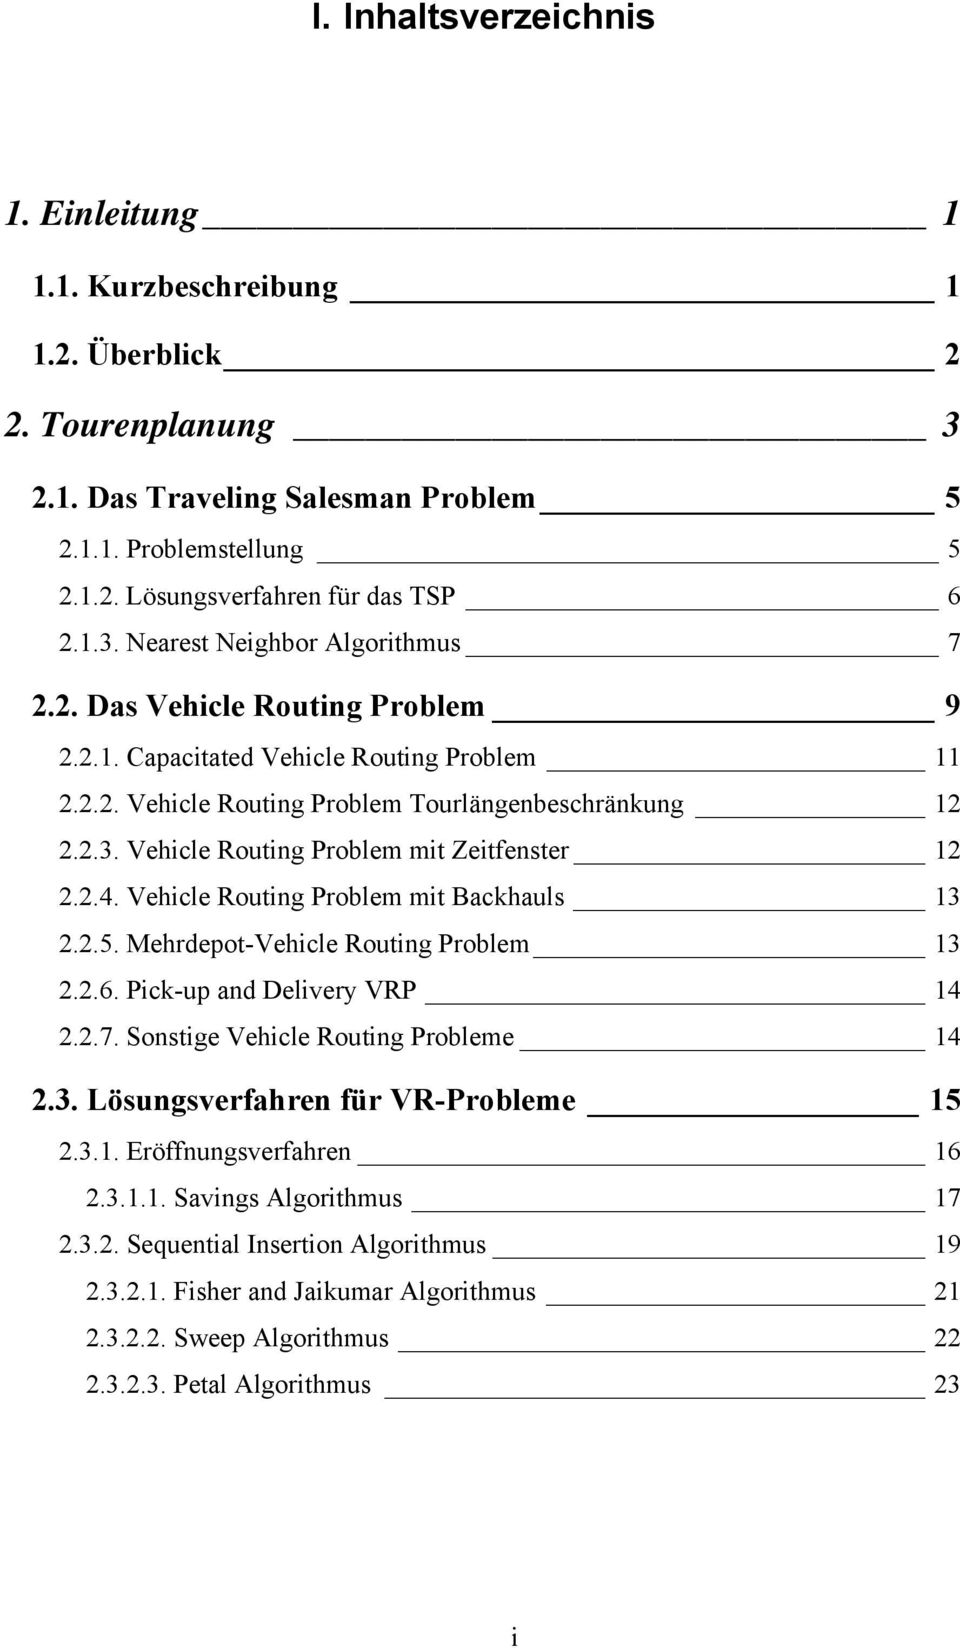 2.4. Vehicle Routing Problem mit Backhauls 13 2.2.5. Mehrdepot-Vehicle Routing Problem 13 2.2.6. Pick-up and Delivery VRP 14 2.2.7. Sonstige Vehicle Routing Probleme 14 2.3. Lösungsverfahren für VR-Probleme 15 2.